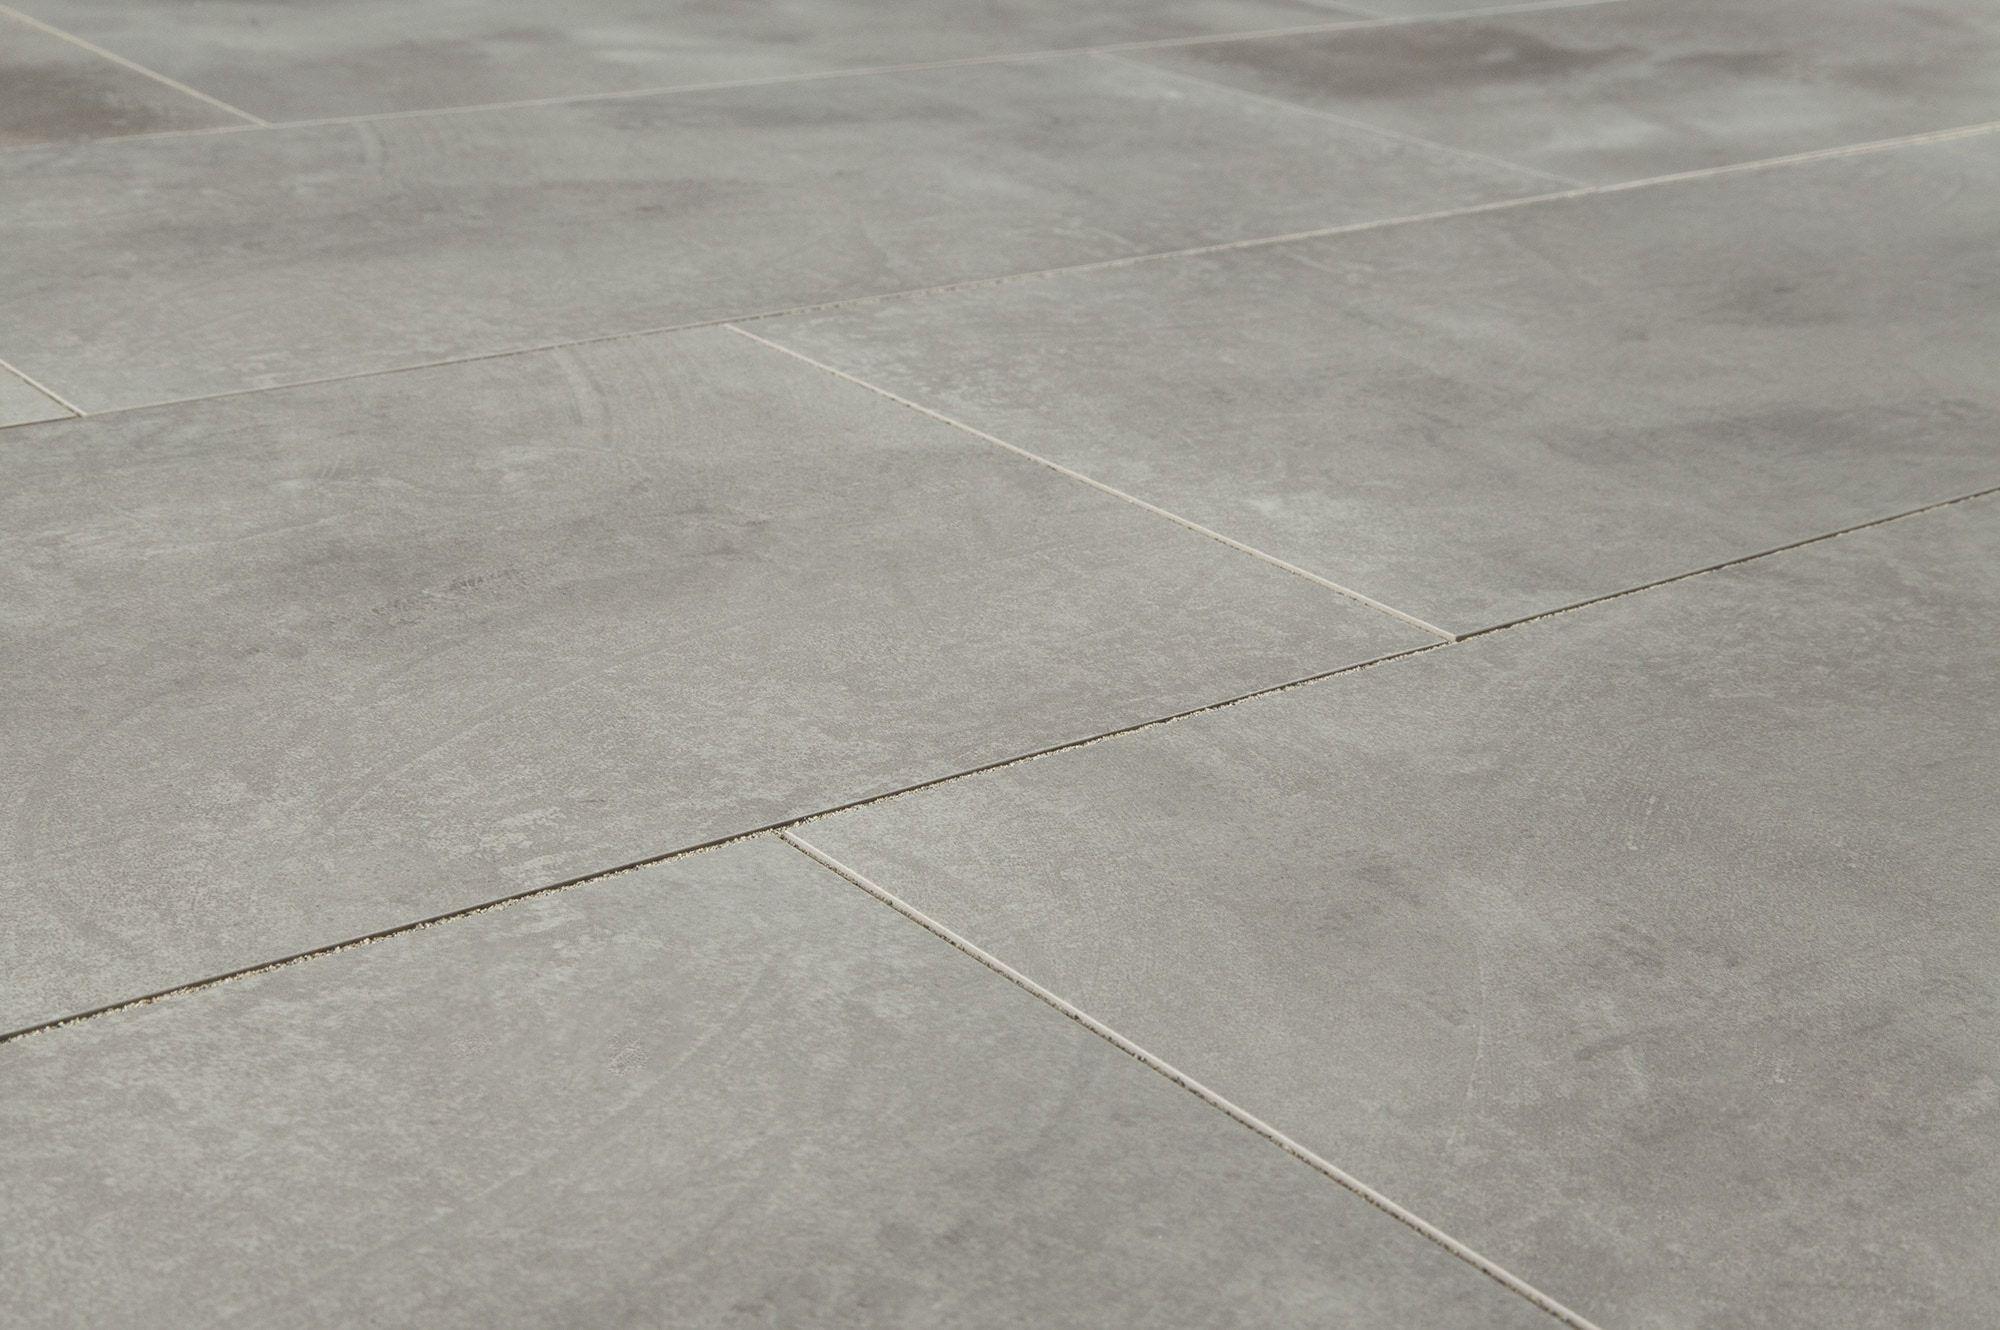 Tile floor on cement slab httpnextsoft21 pinterest tile tile floor on cement slab dailygadgetfo Image collections